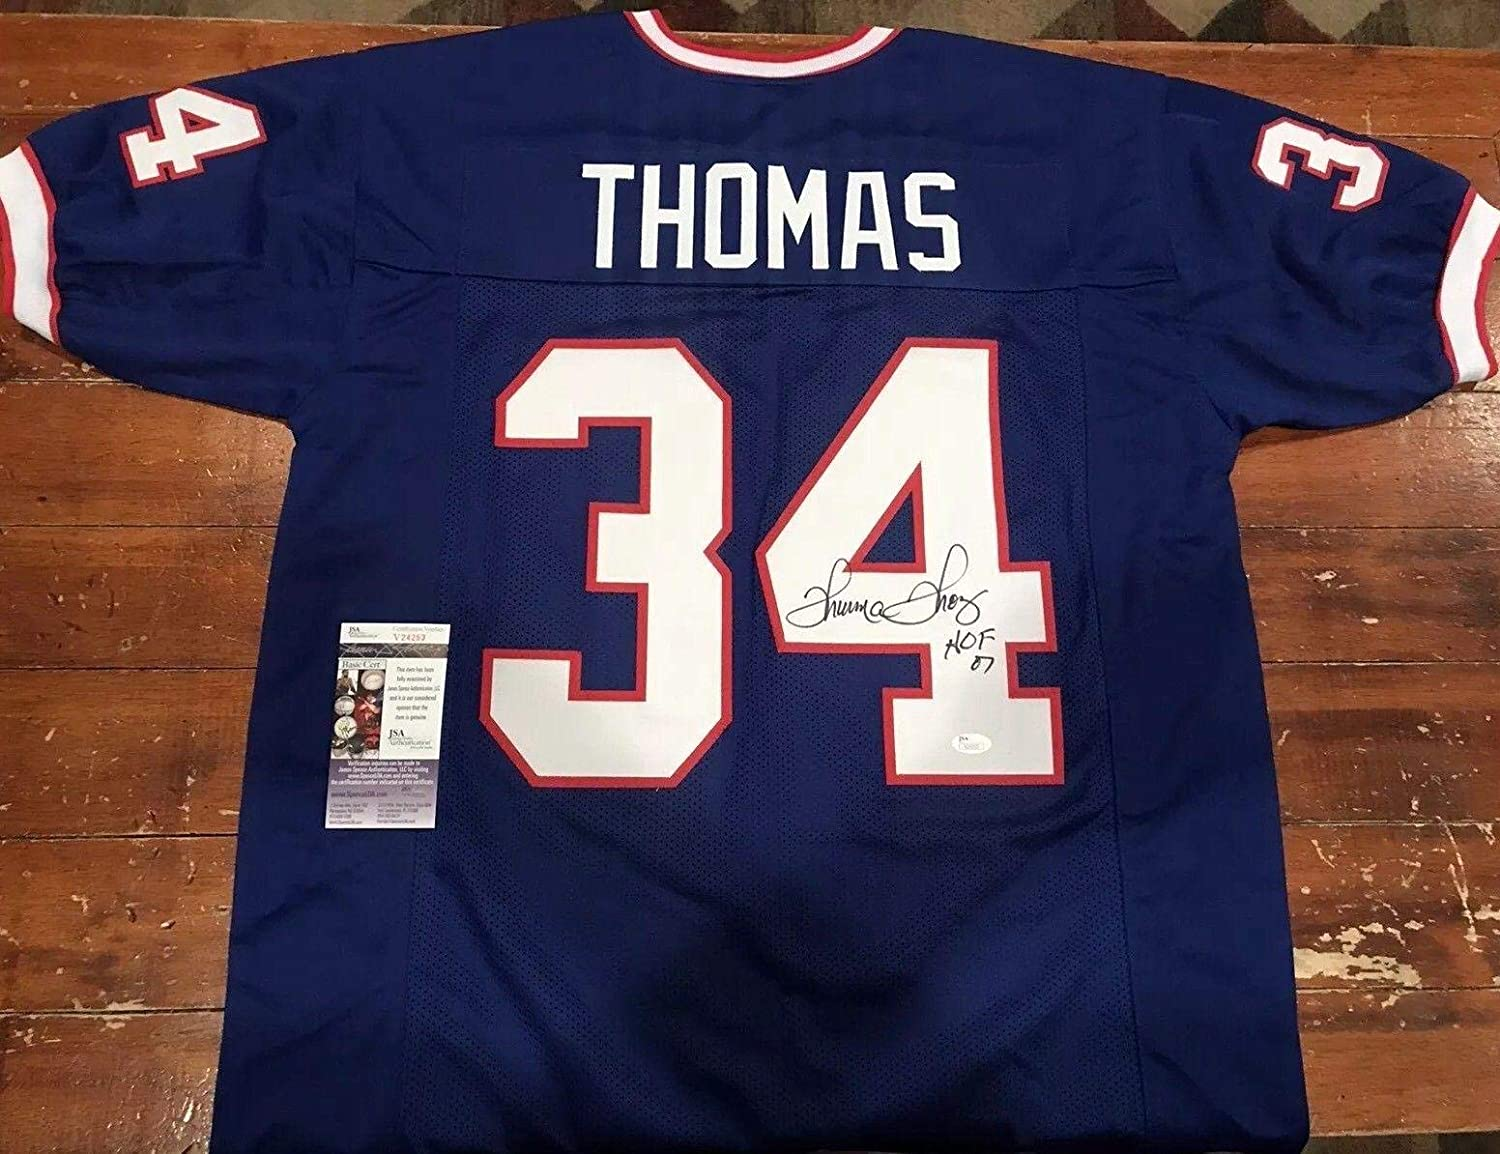 a7d4391f1ad Thurman Thomas Signed Jersey - Custom Throwback Blue - JSA Certified - Autographed  NFL Jerseys at Amazon s Sports Collectibles Store